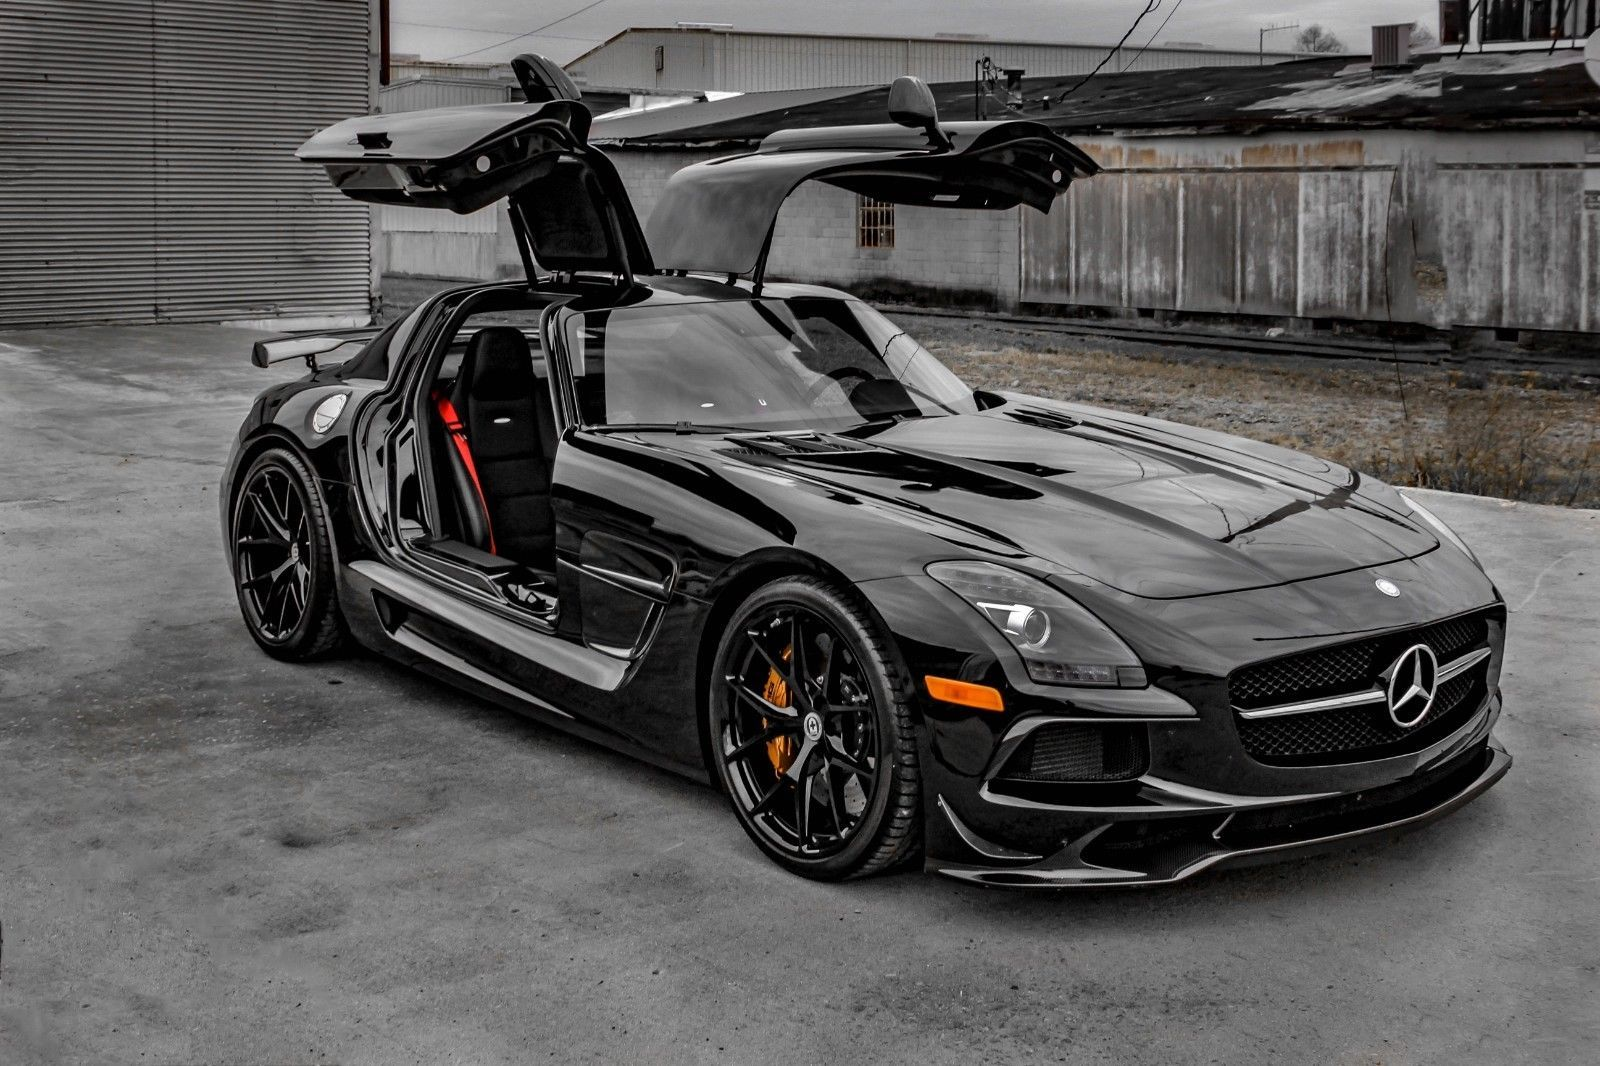 2014 Mercedes-Benz AMG SLS Black